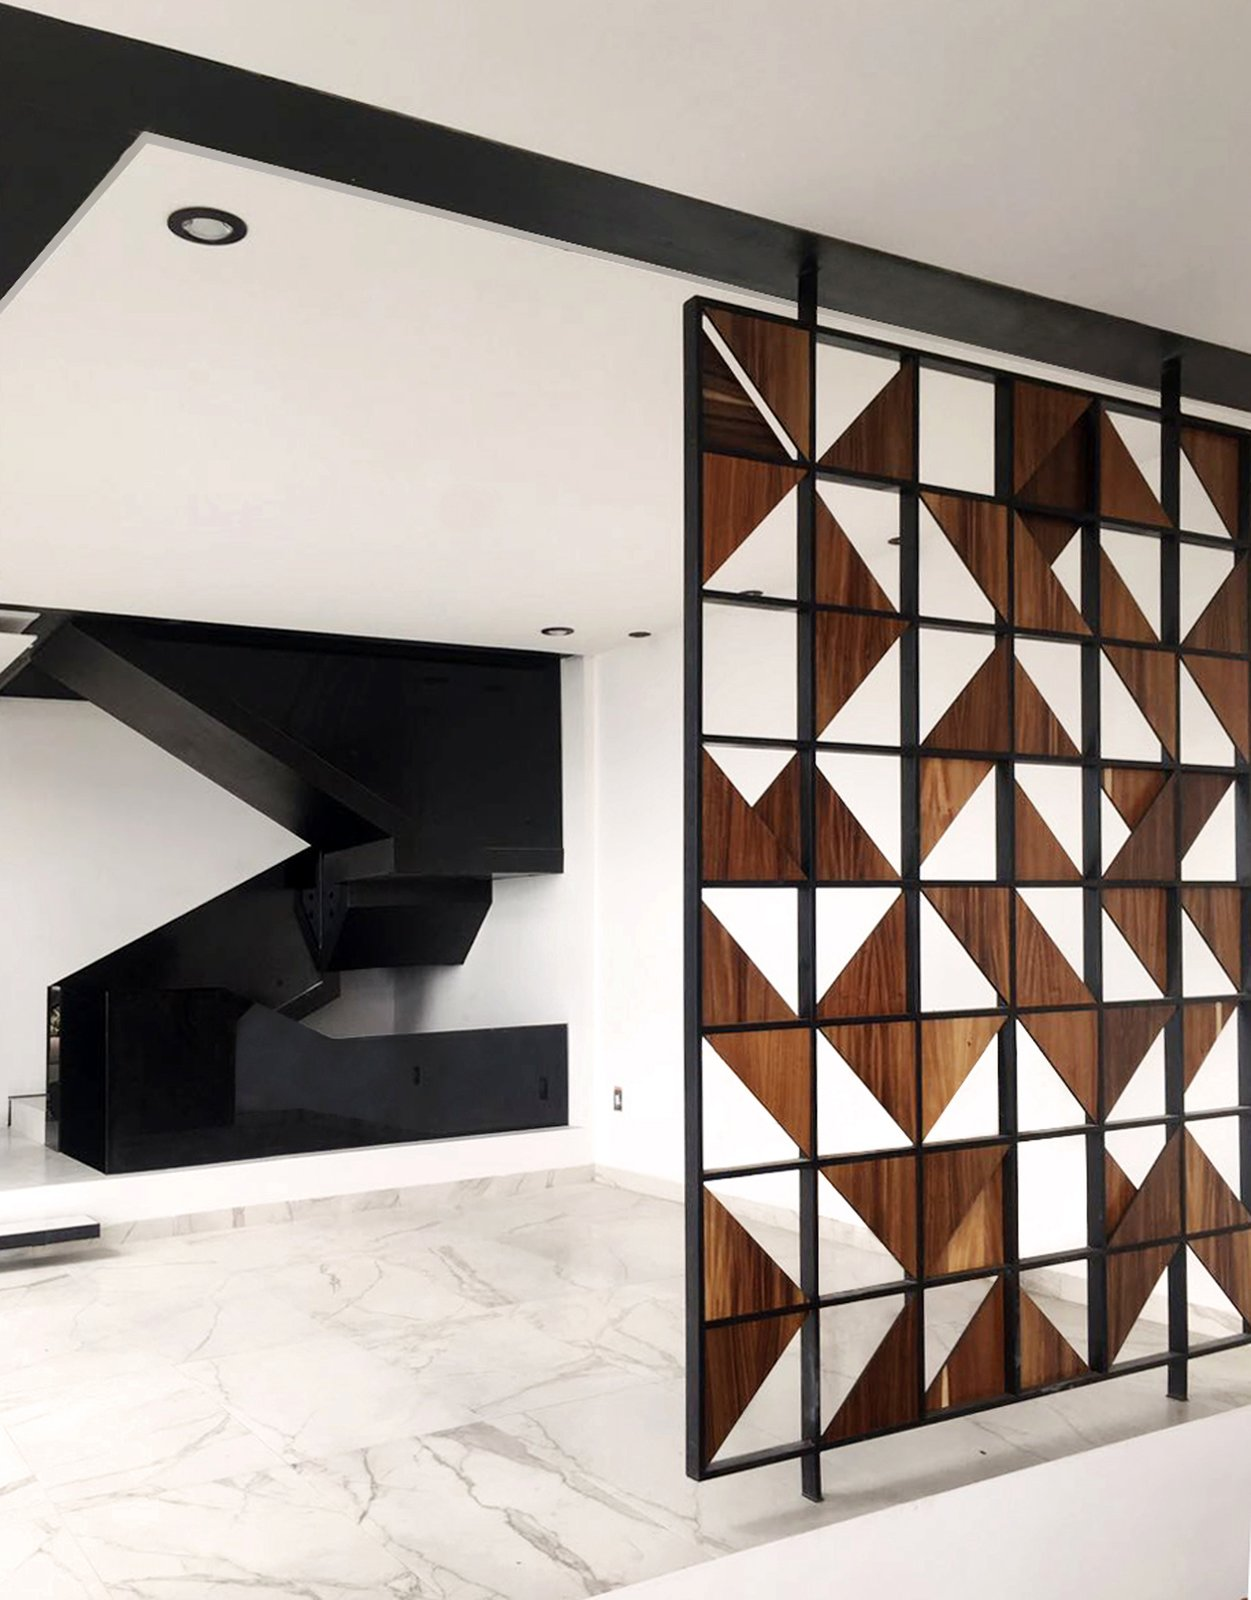 Detail - Lattice and Stairs Tagged: Dining Room, Shelves, and Porcelain Tile Floor.  Casa AB by e|arquitectos